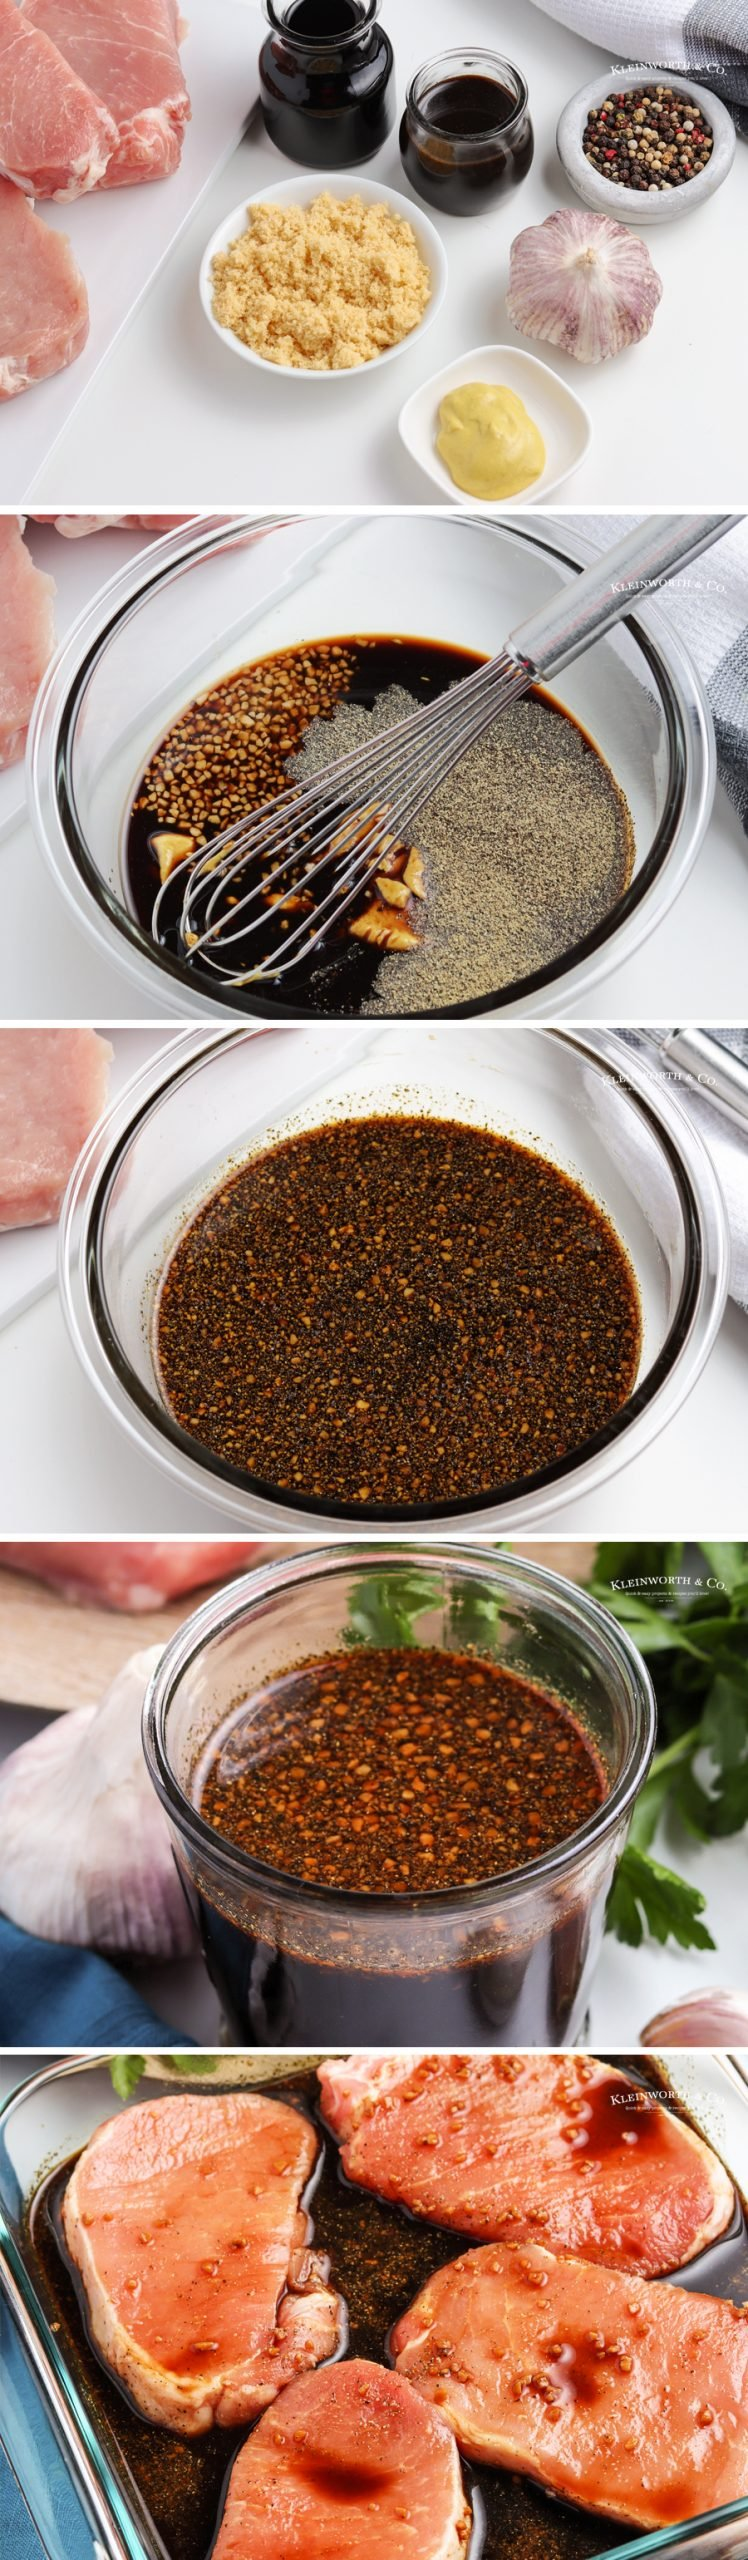 how to make The Best Pork Marinade